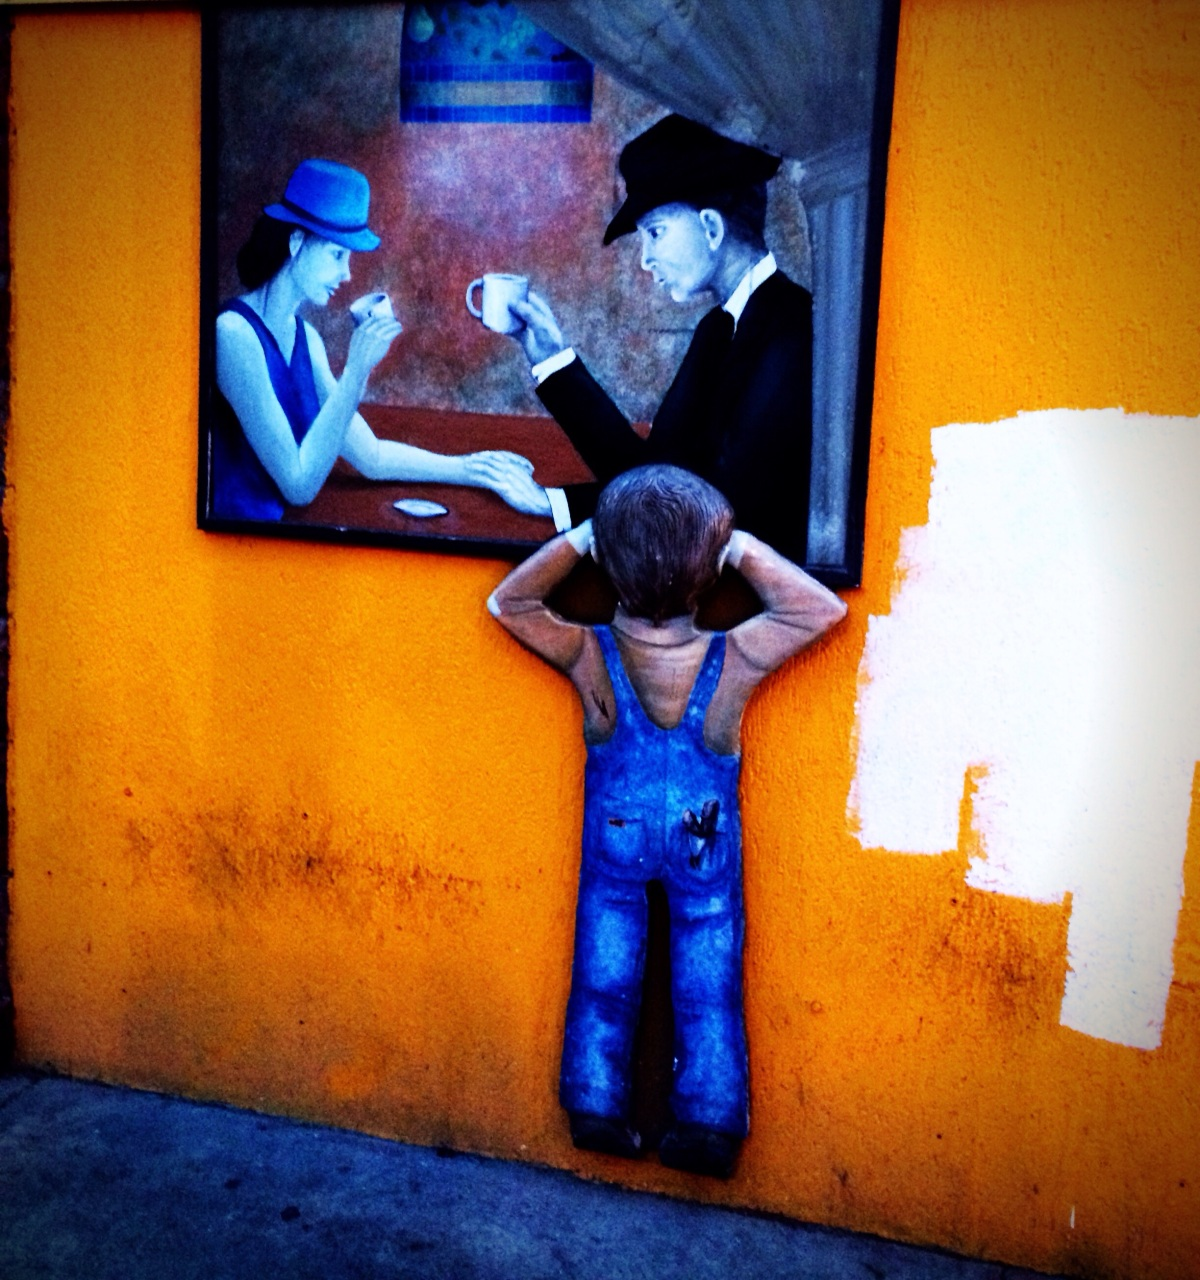 The kid at the window #Iphoneography #photography #streetart